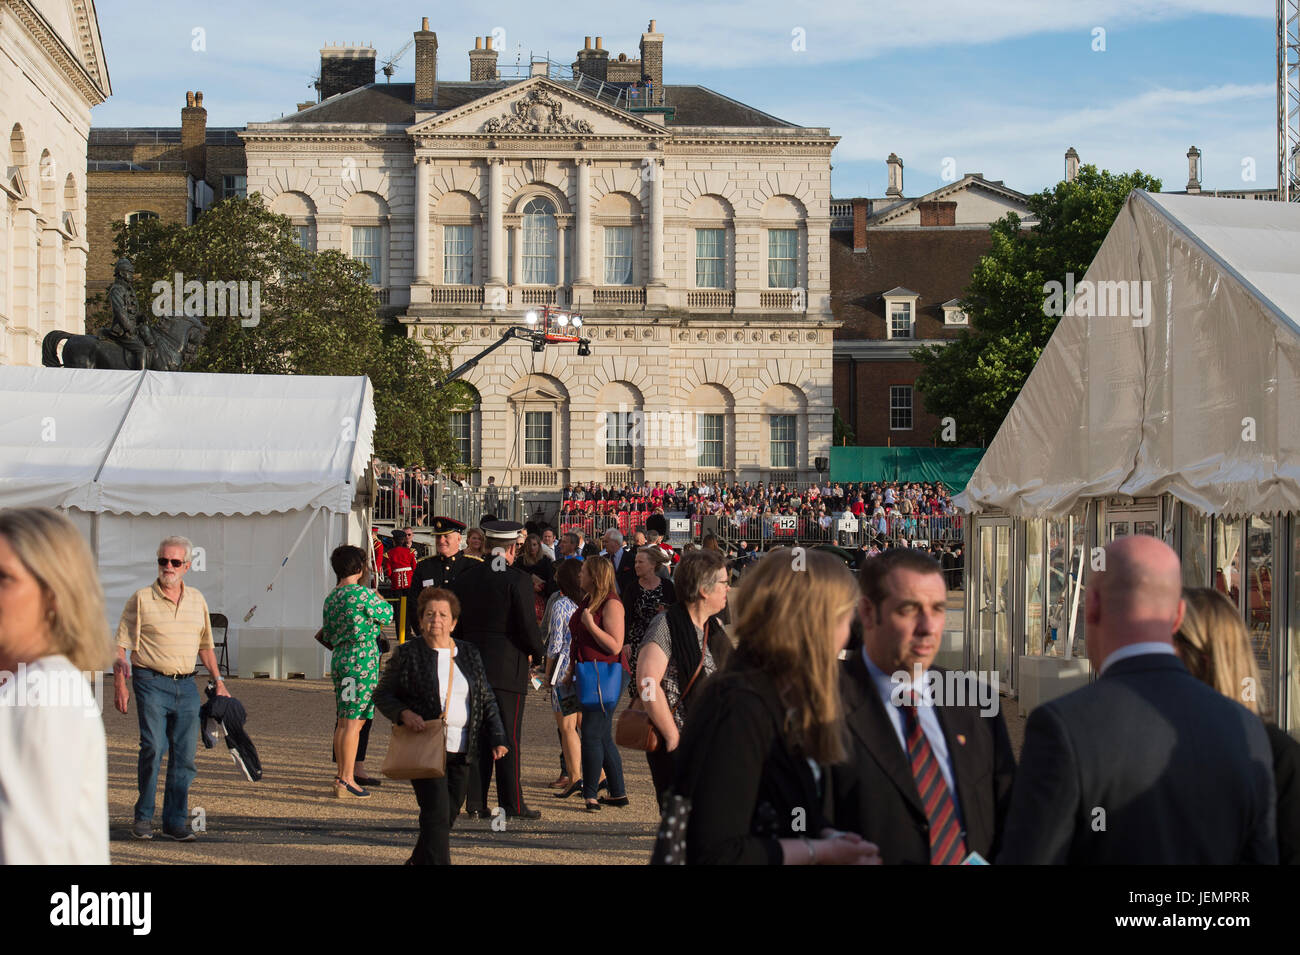 Guests arrive on Horse Guards Parade for the evening spectacle of Beating Retreat, an annual summer military show - Stock Image